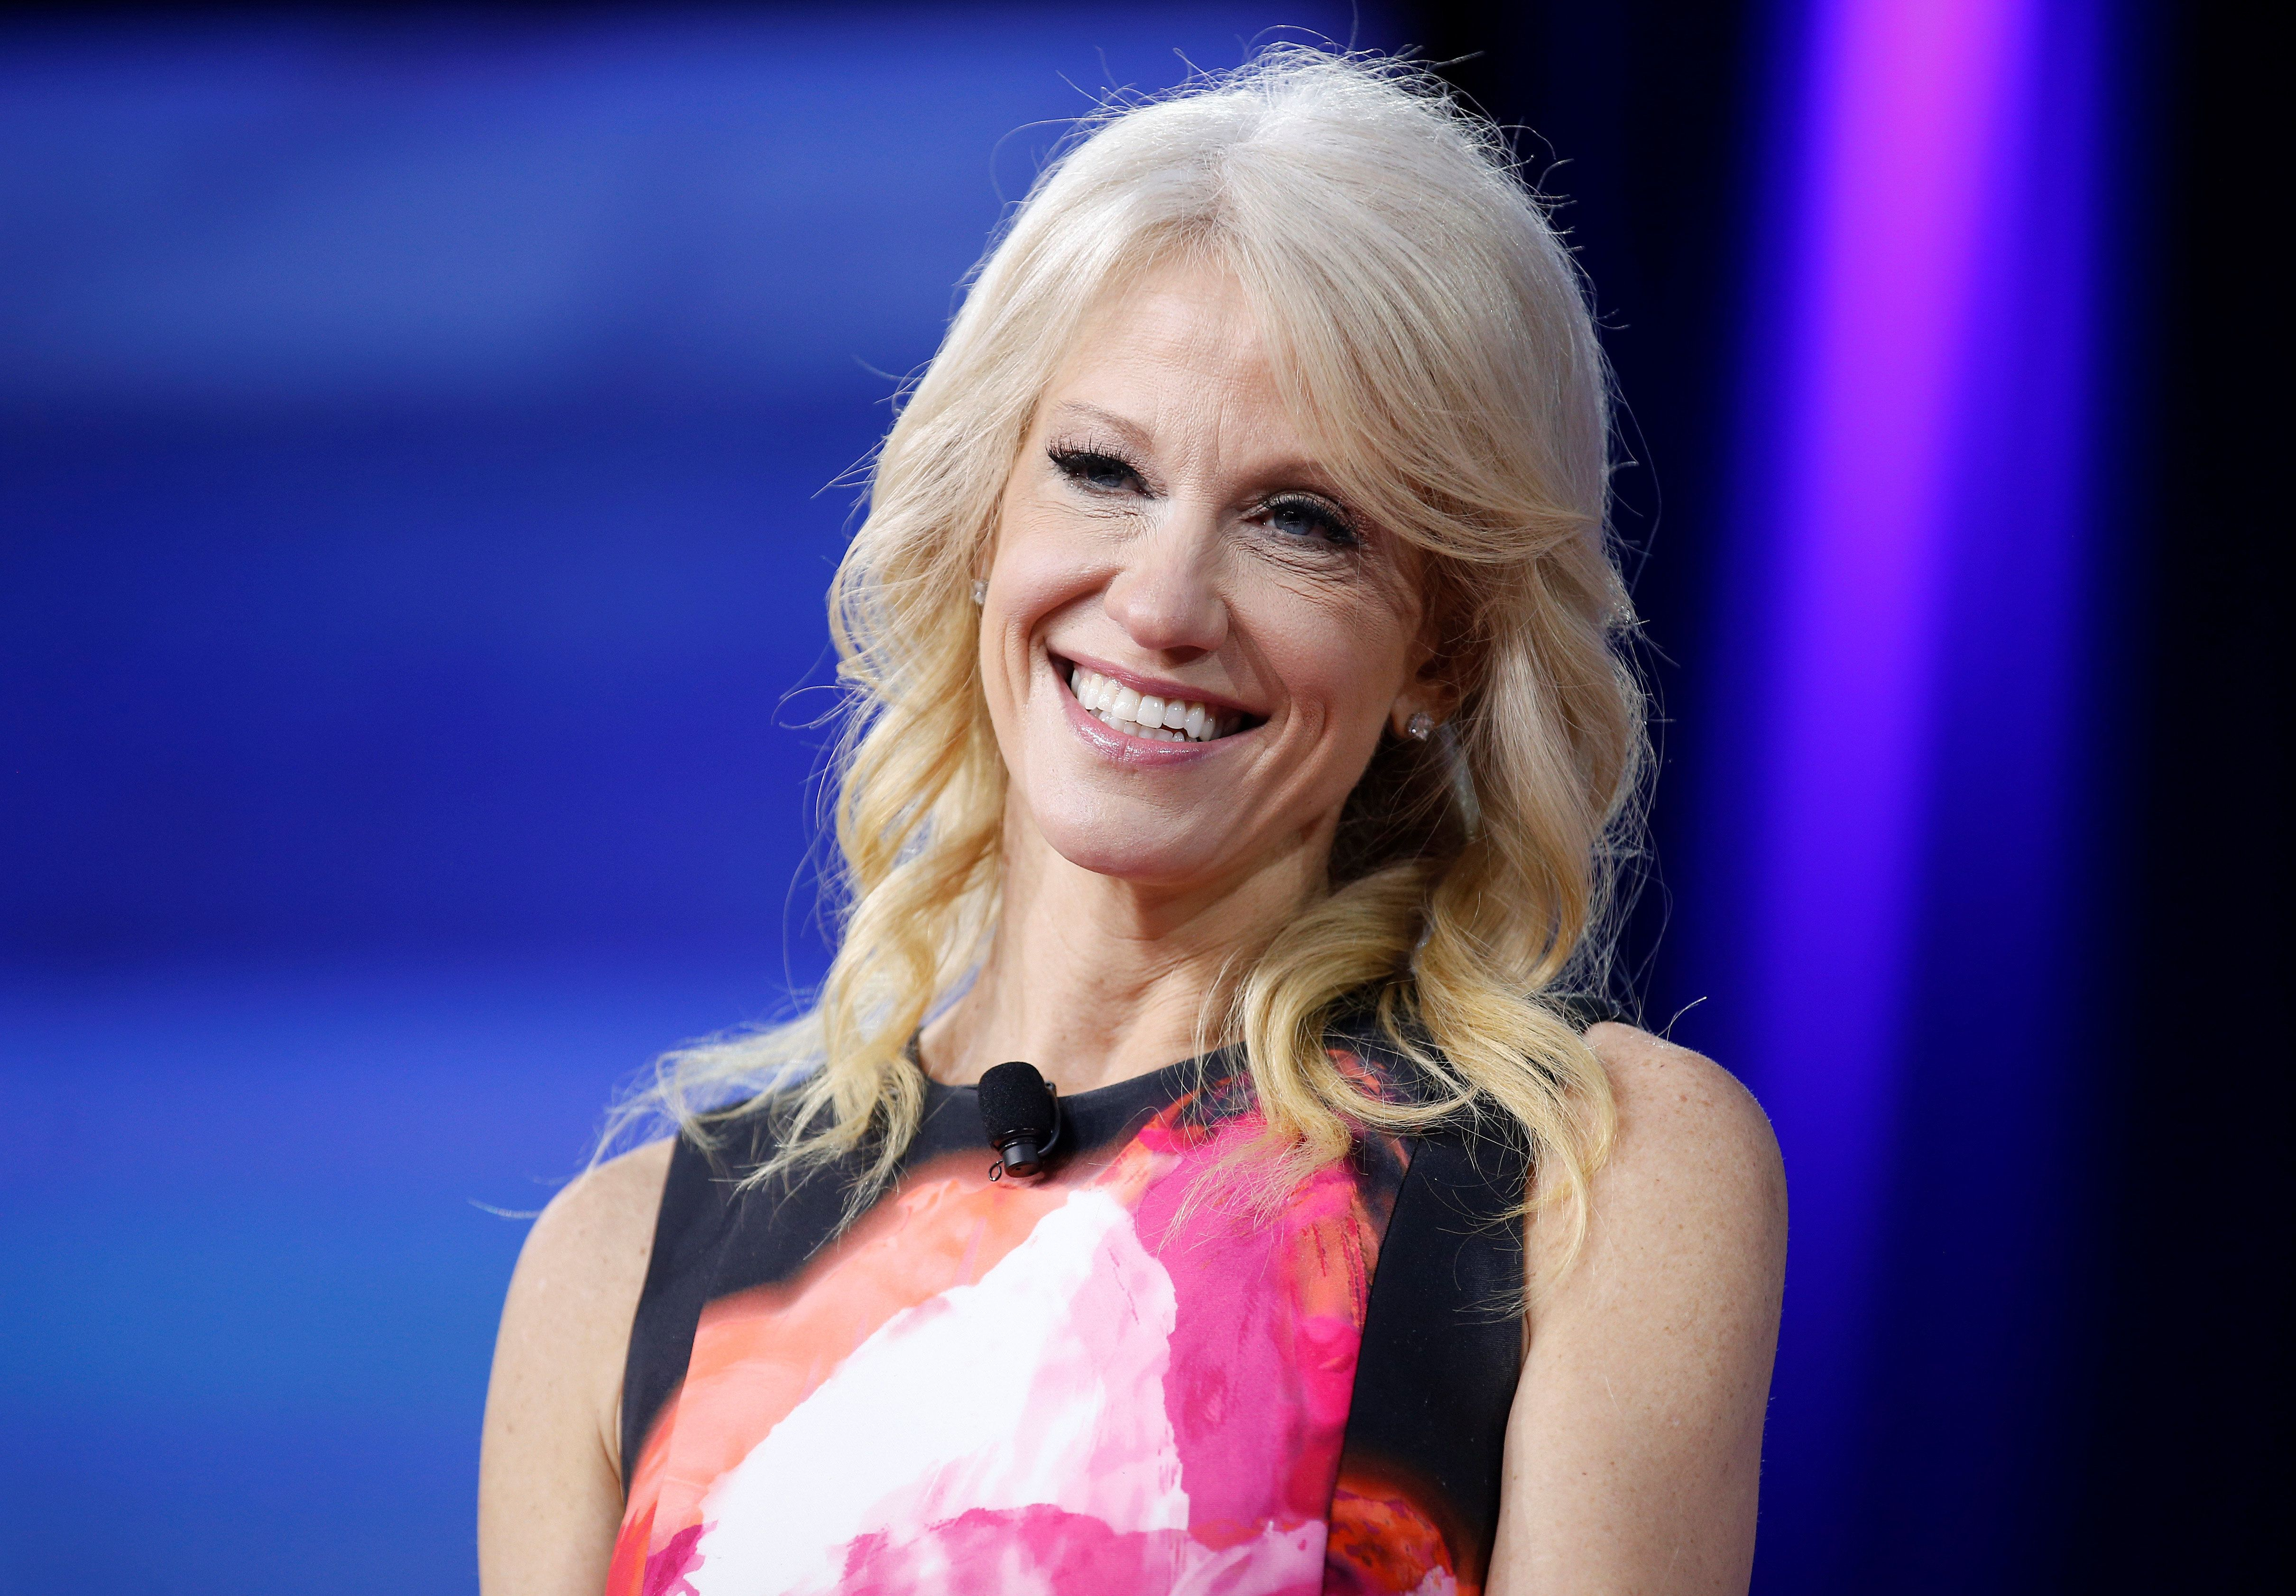 Kellyanne Conway, counsel to President Donald Trump, is one of many top advisers who has had direct access to the president.